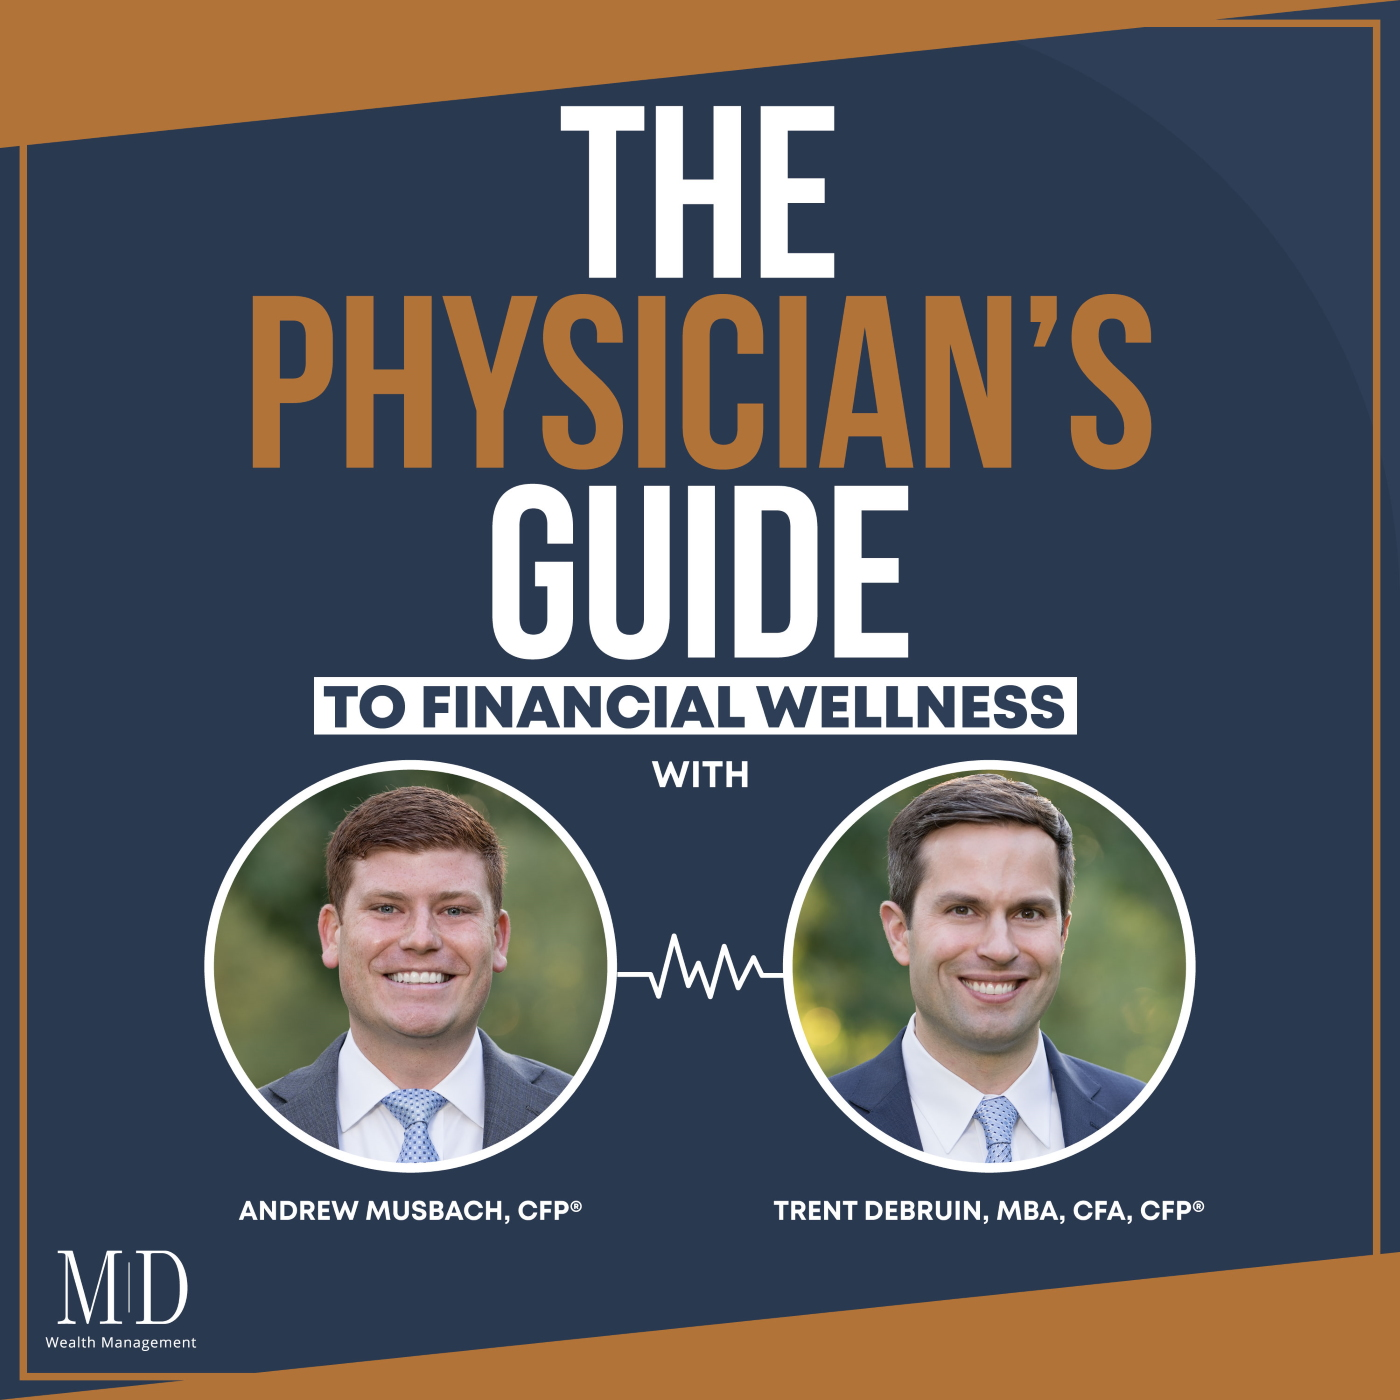 The Physician's Guide To Financial Wellness podcast show image